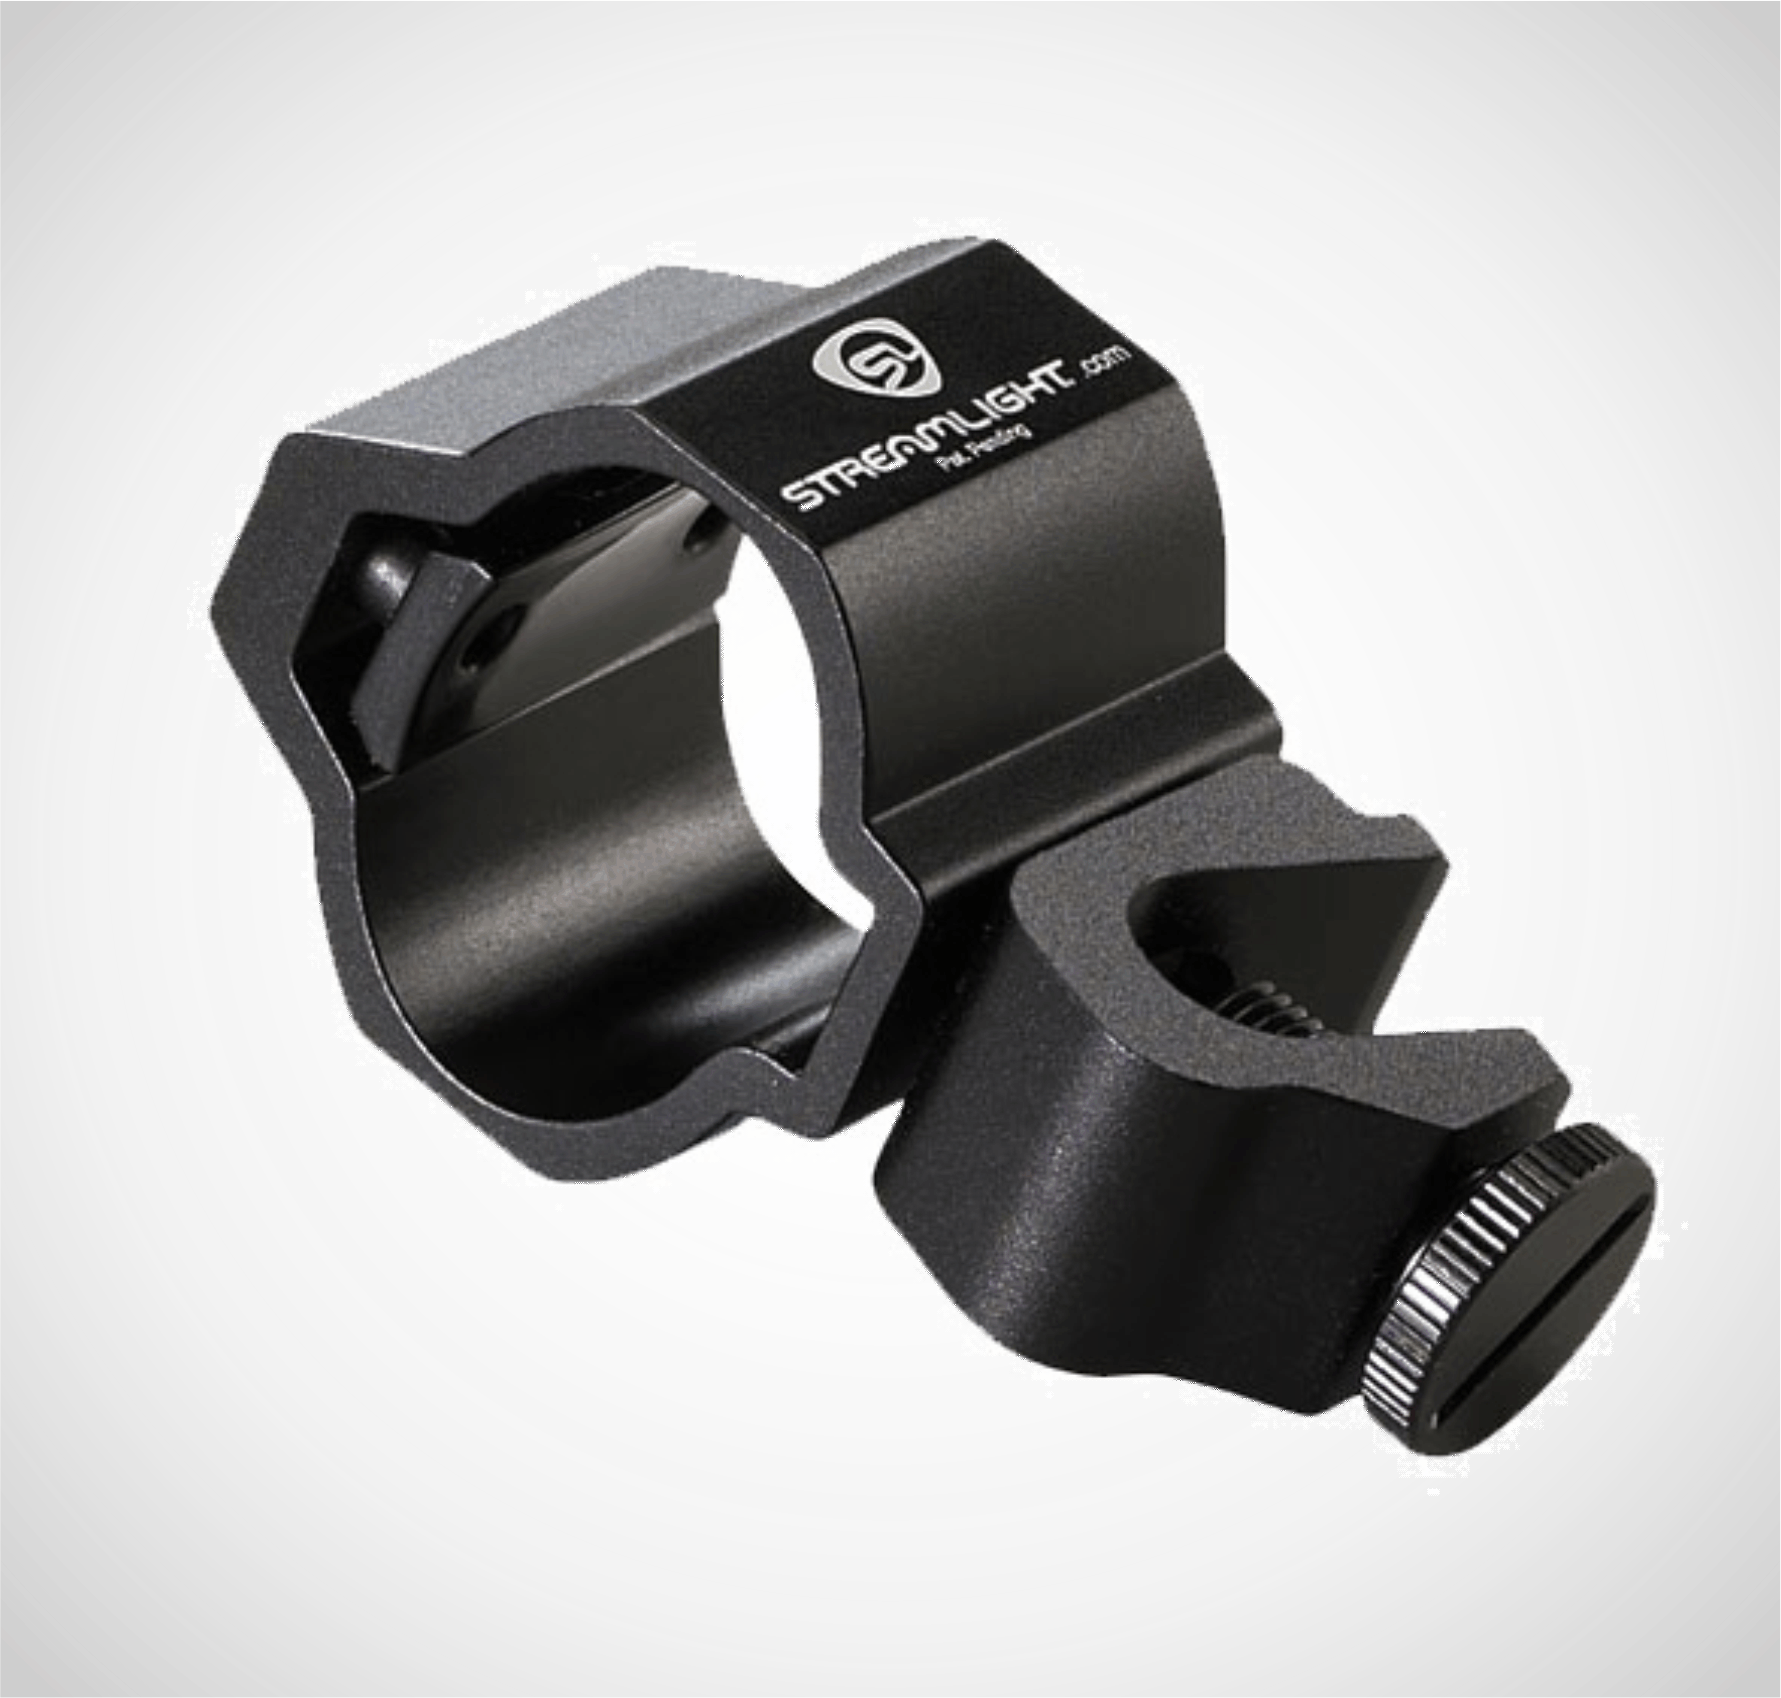 Soporte de Linterna Streamlight